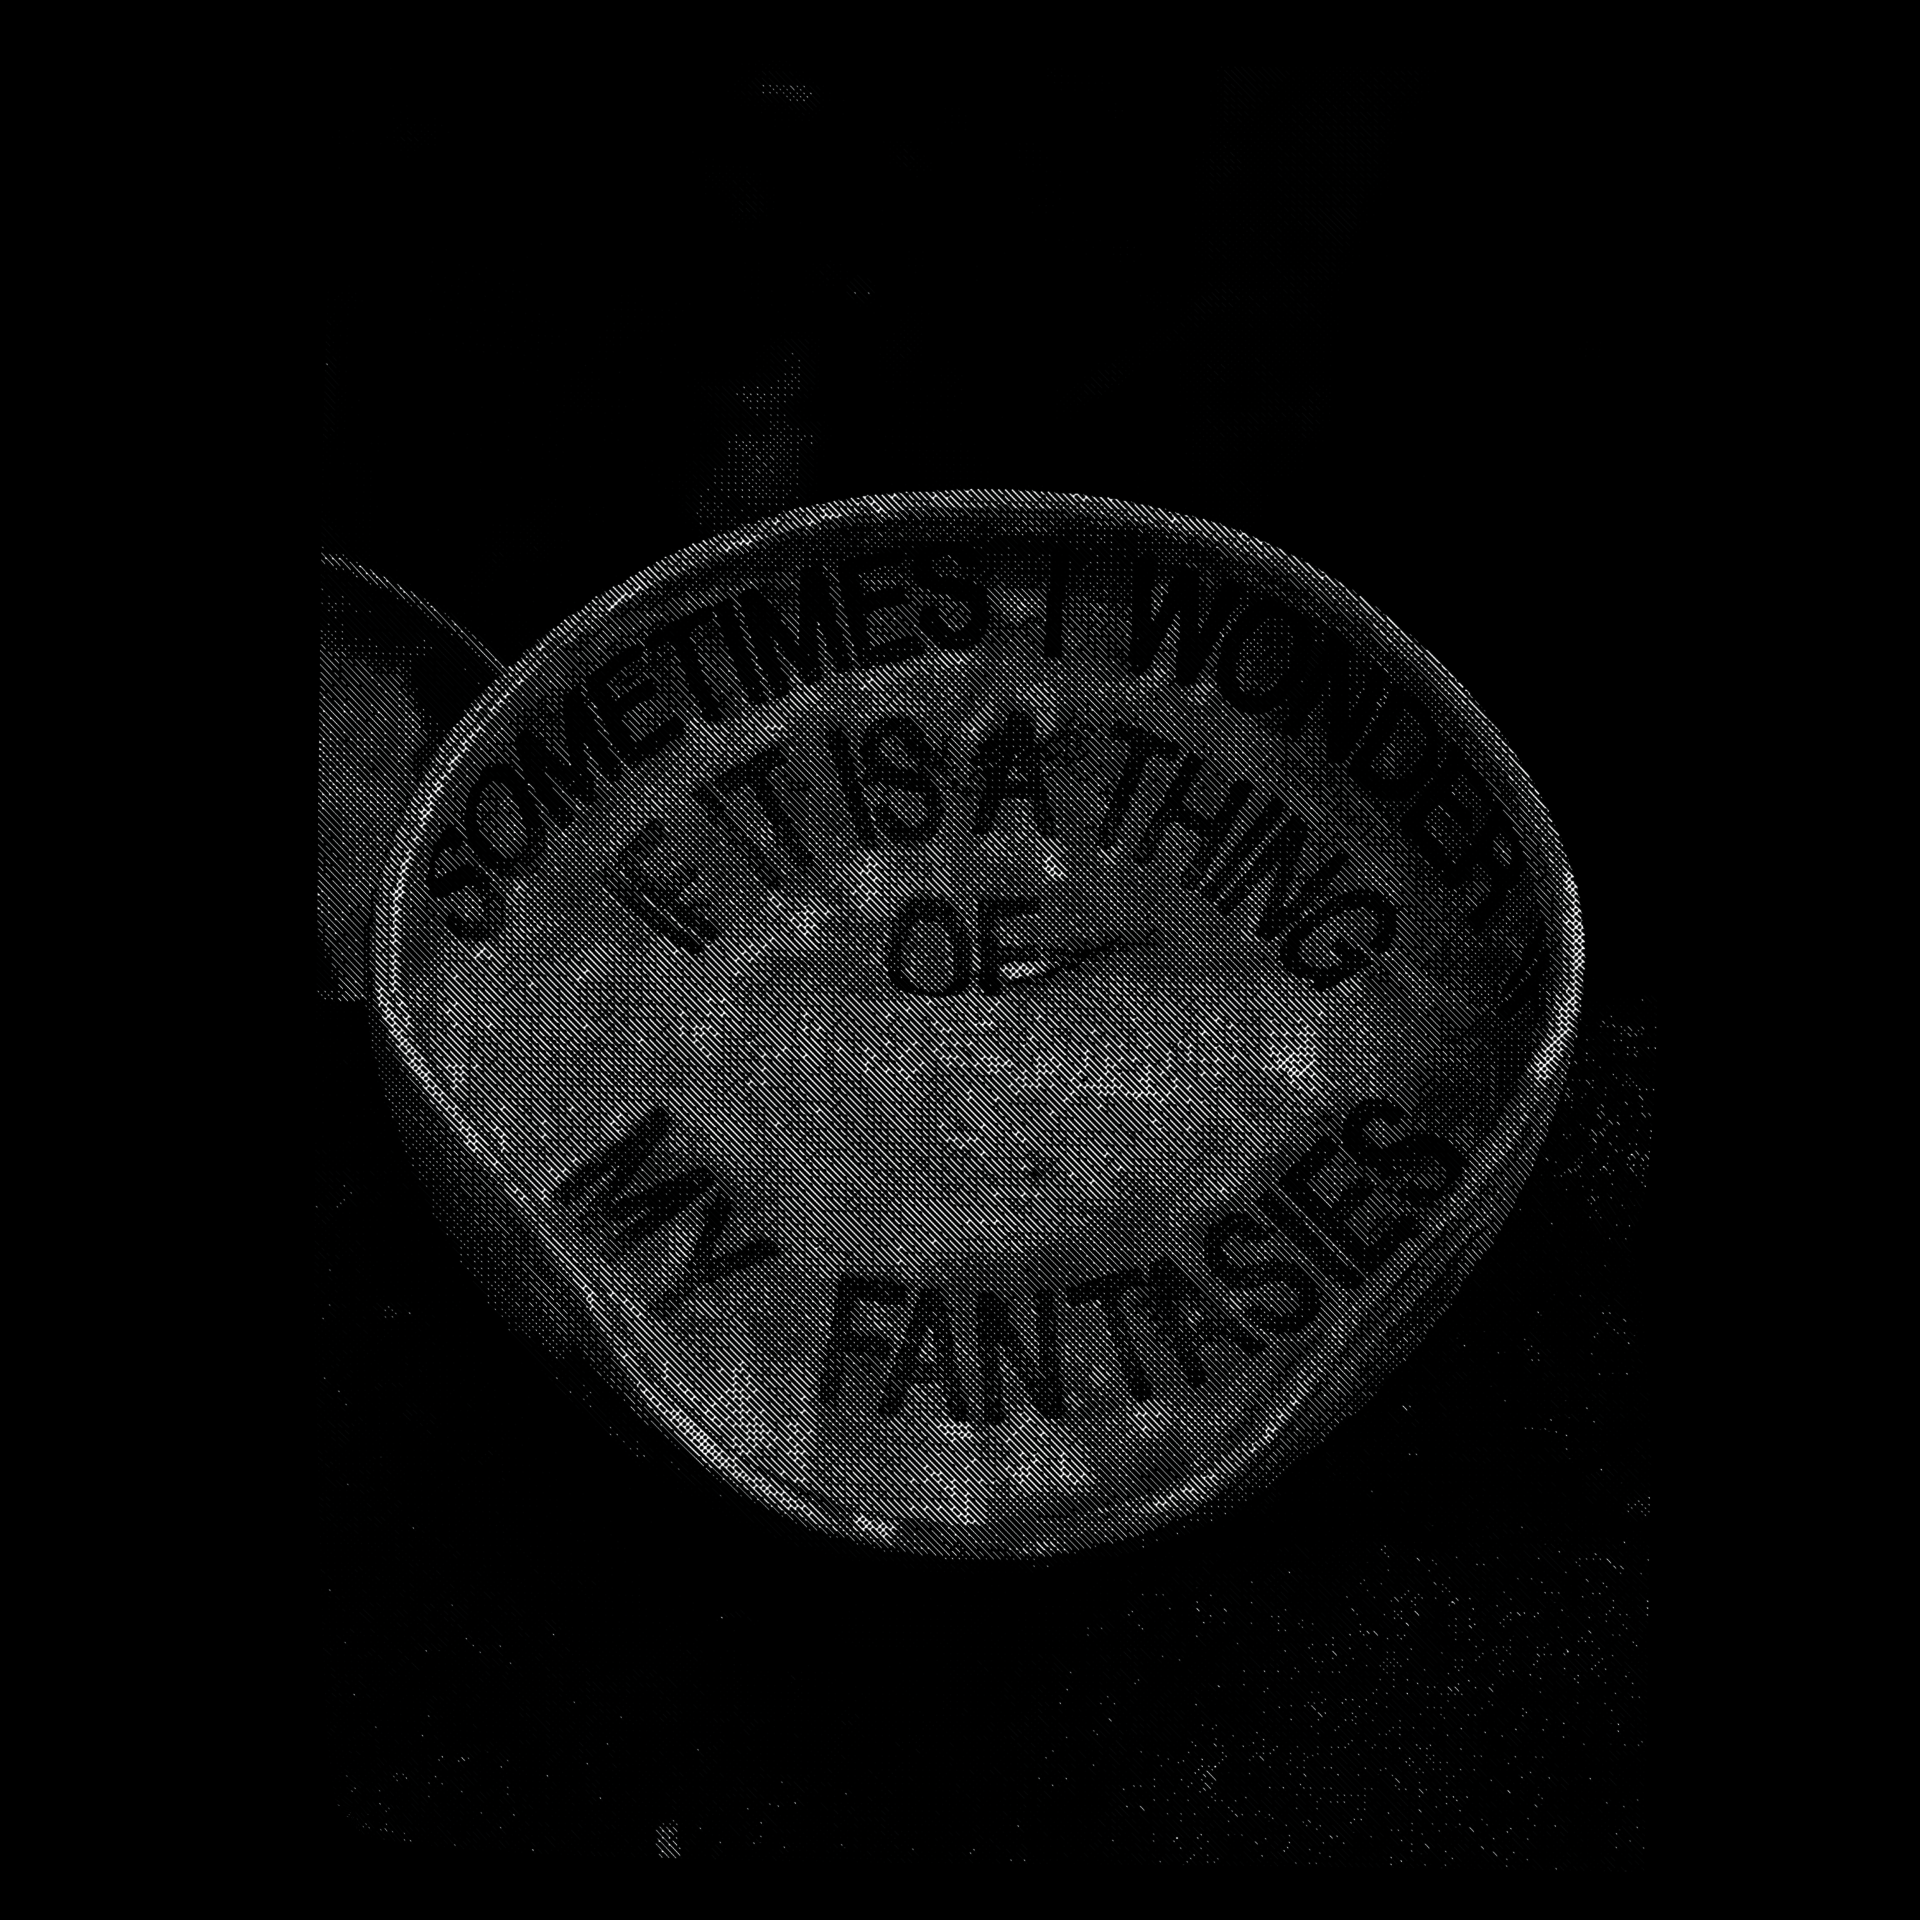 Black and white photograph of a ceramic vessel with the text 'SOMETIMES I WONDER IF IT IS A THING OF MY FANTASIES' printed in black